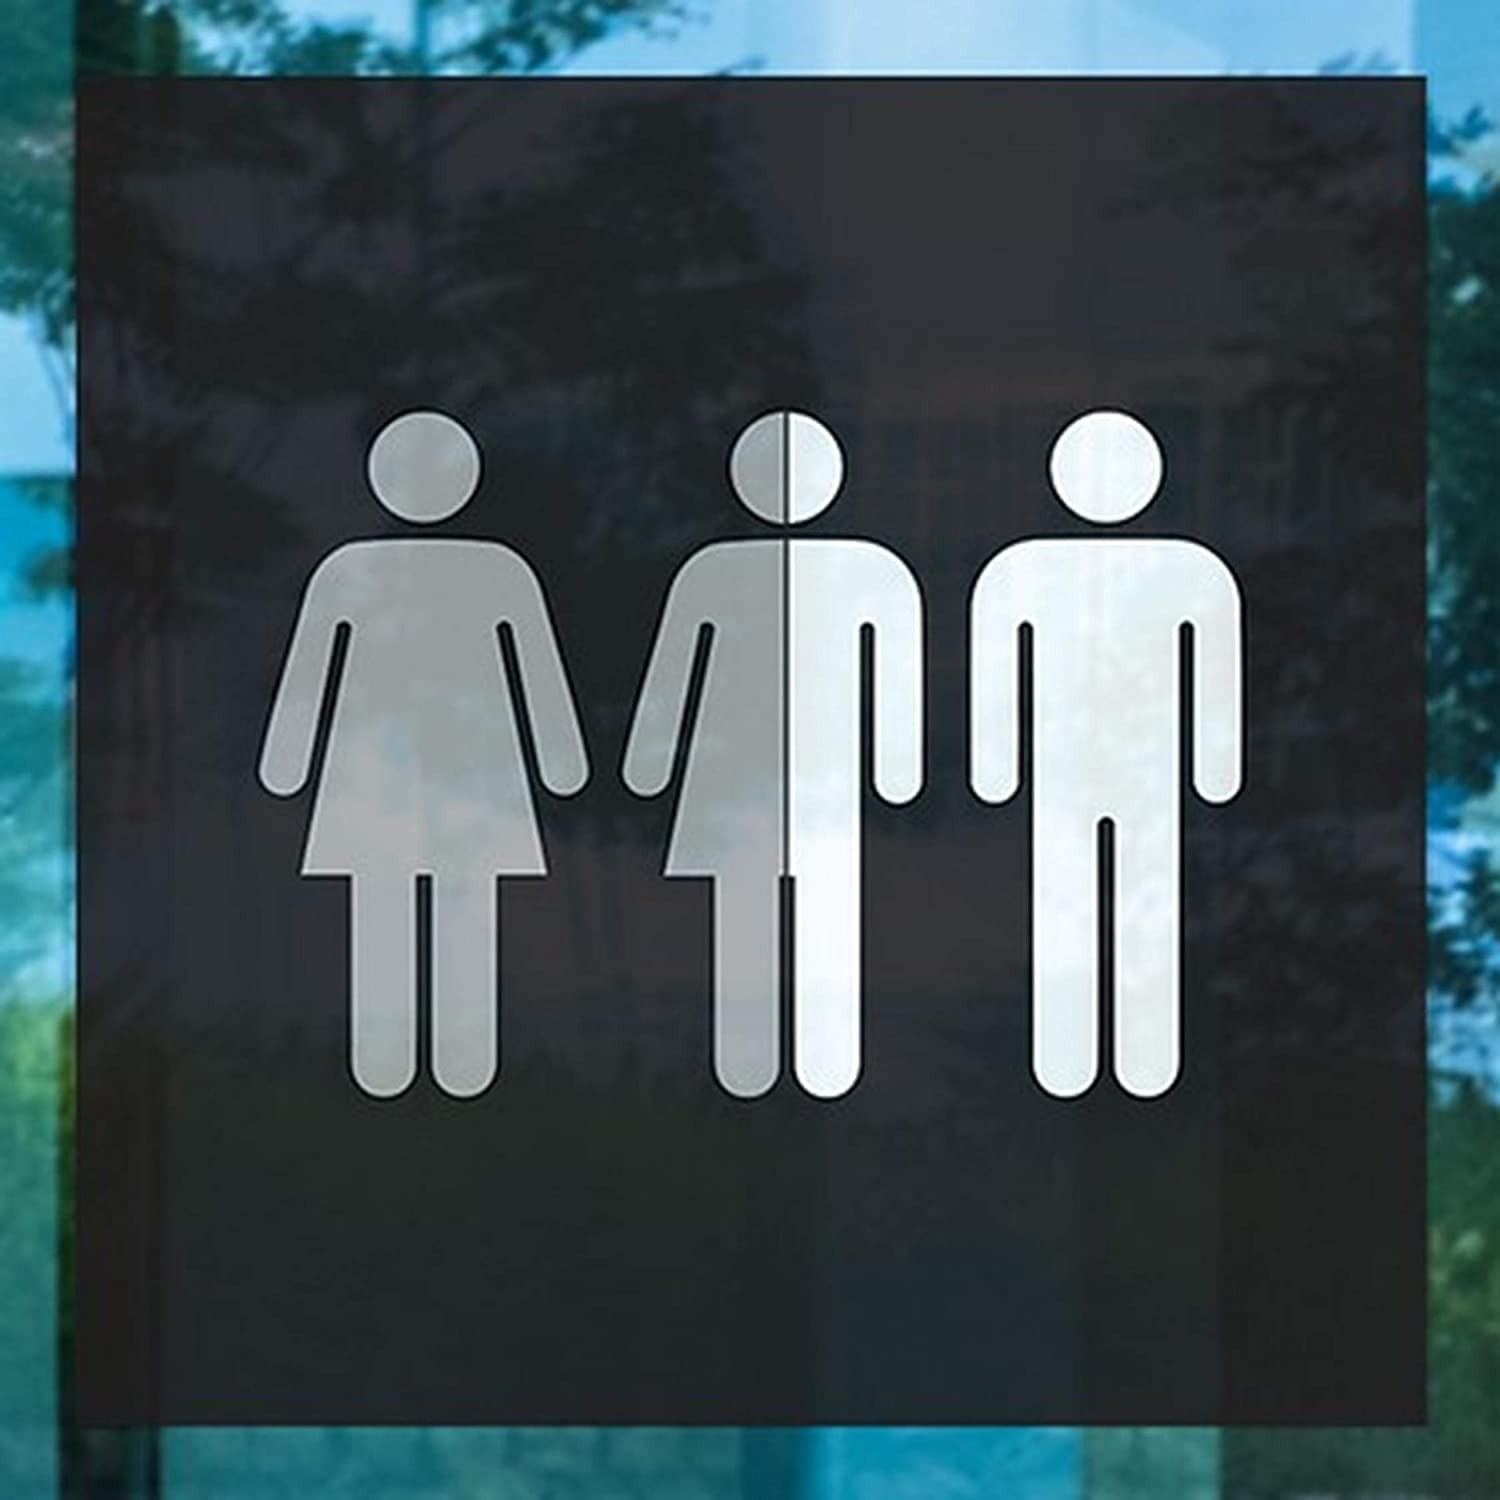 CGSignLab 16x16 5-Pack Gender Neutral Sign in Black and White Clear Window Cling